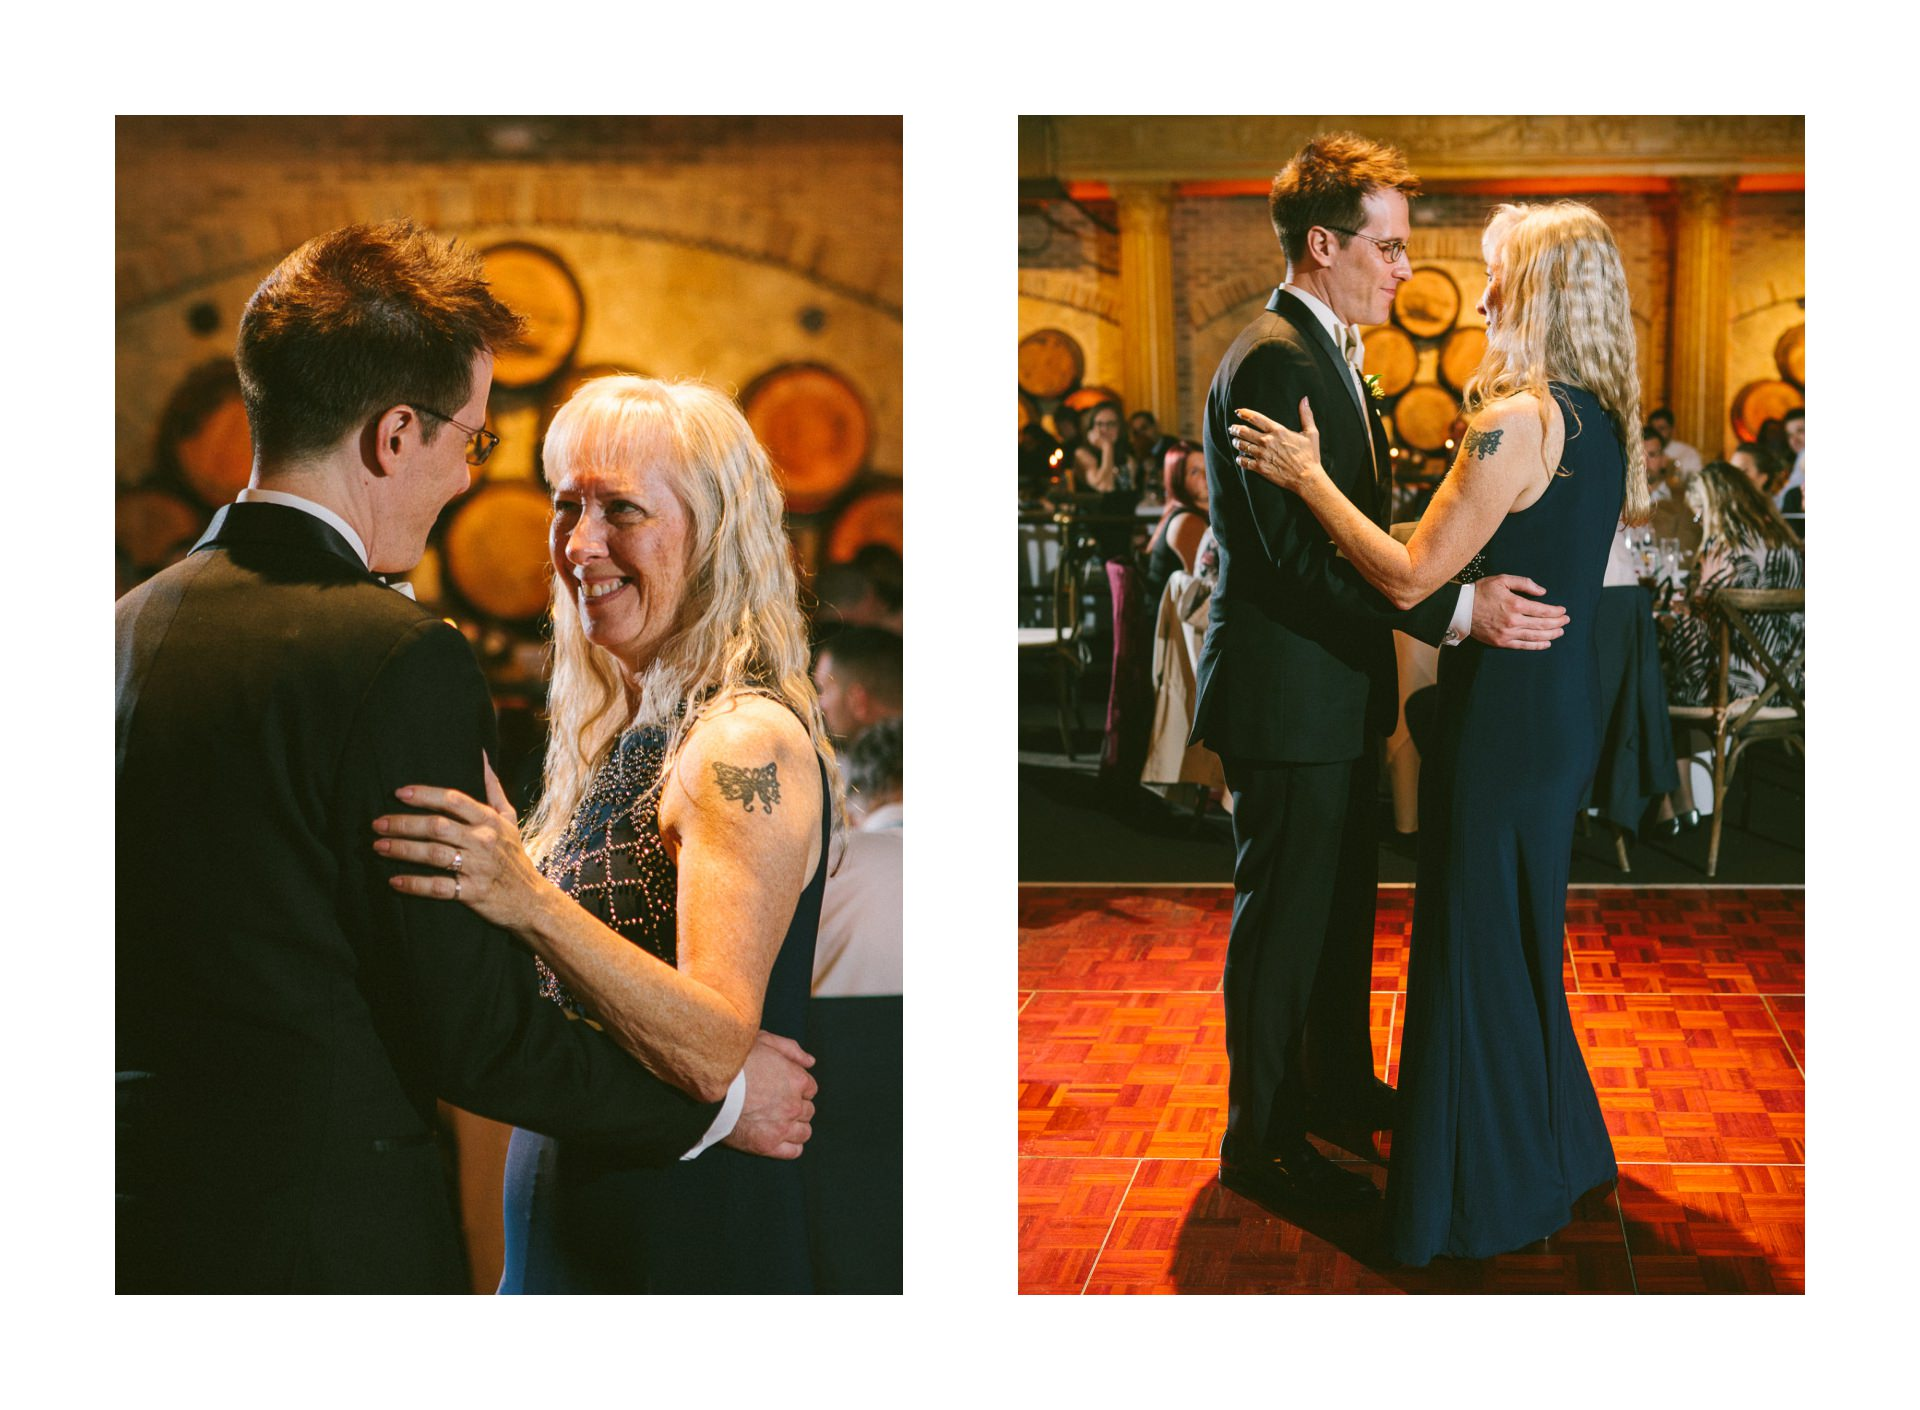 Cibreo Privato Wedding at Playhouse Square in Cleveland 2 27.jpg